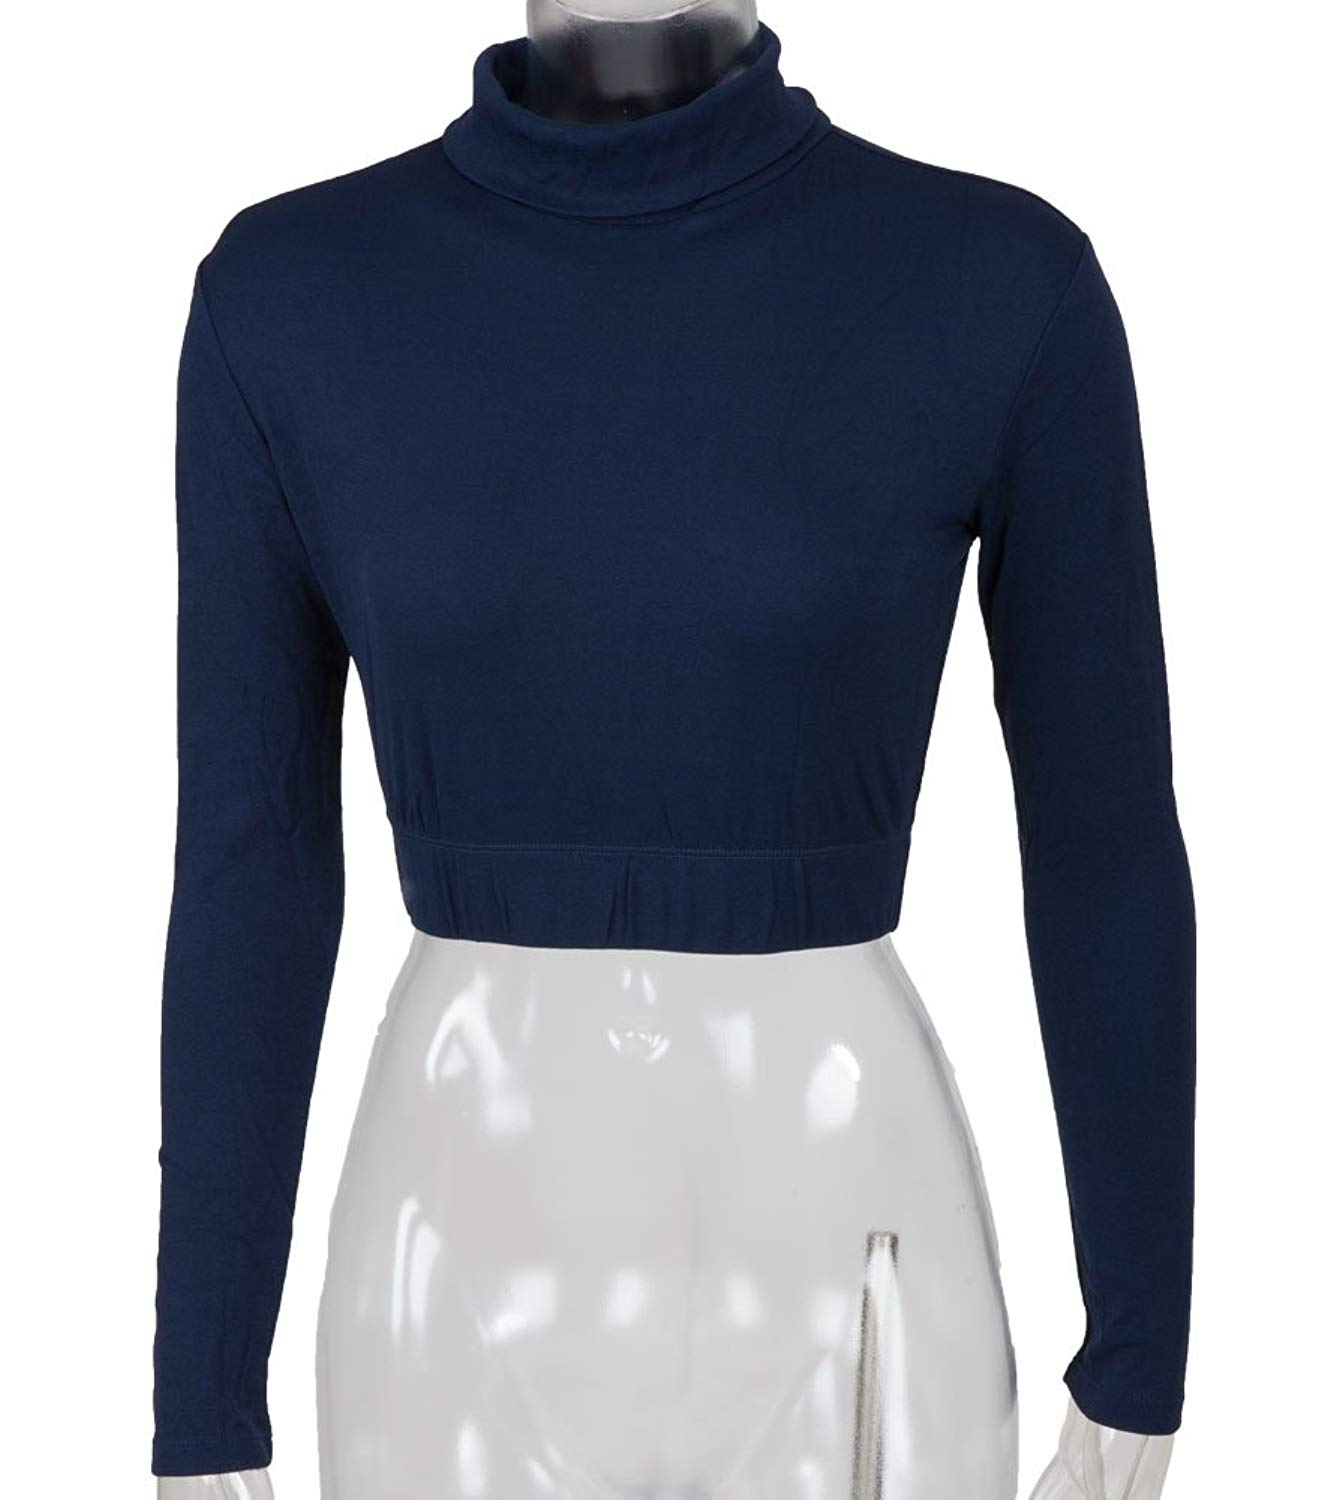 bbc52281fd Get Quotations · Cheer Fantastic Turtleneck Midriff Size Youth Small Navy